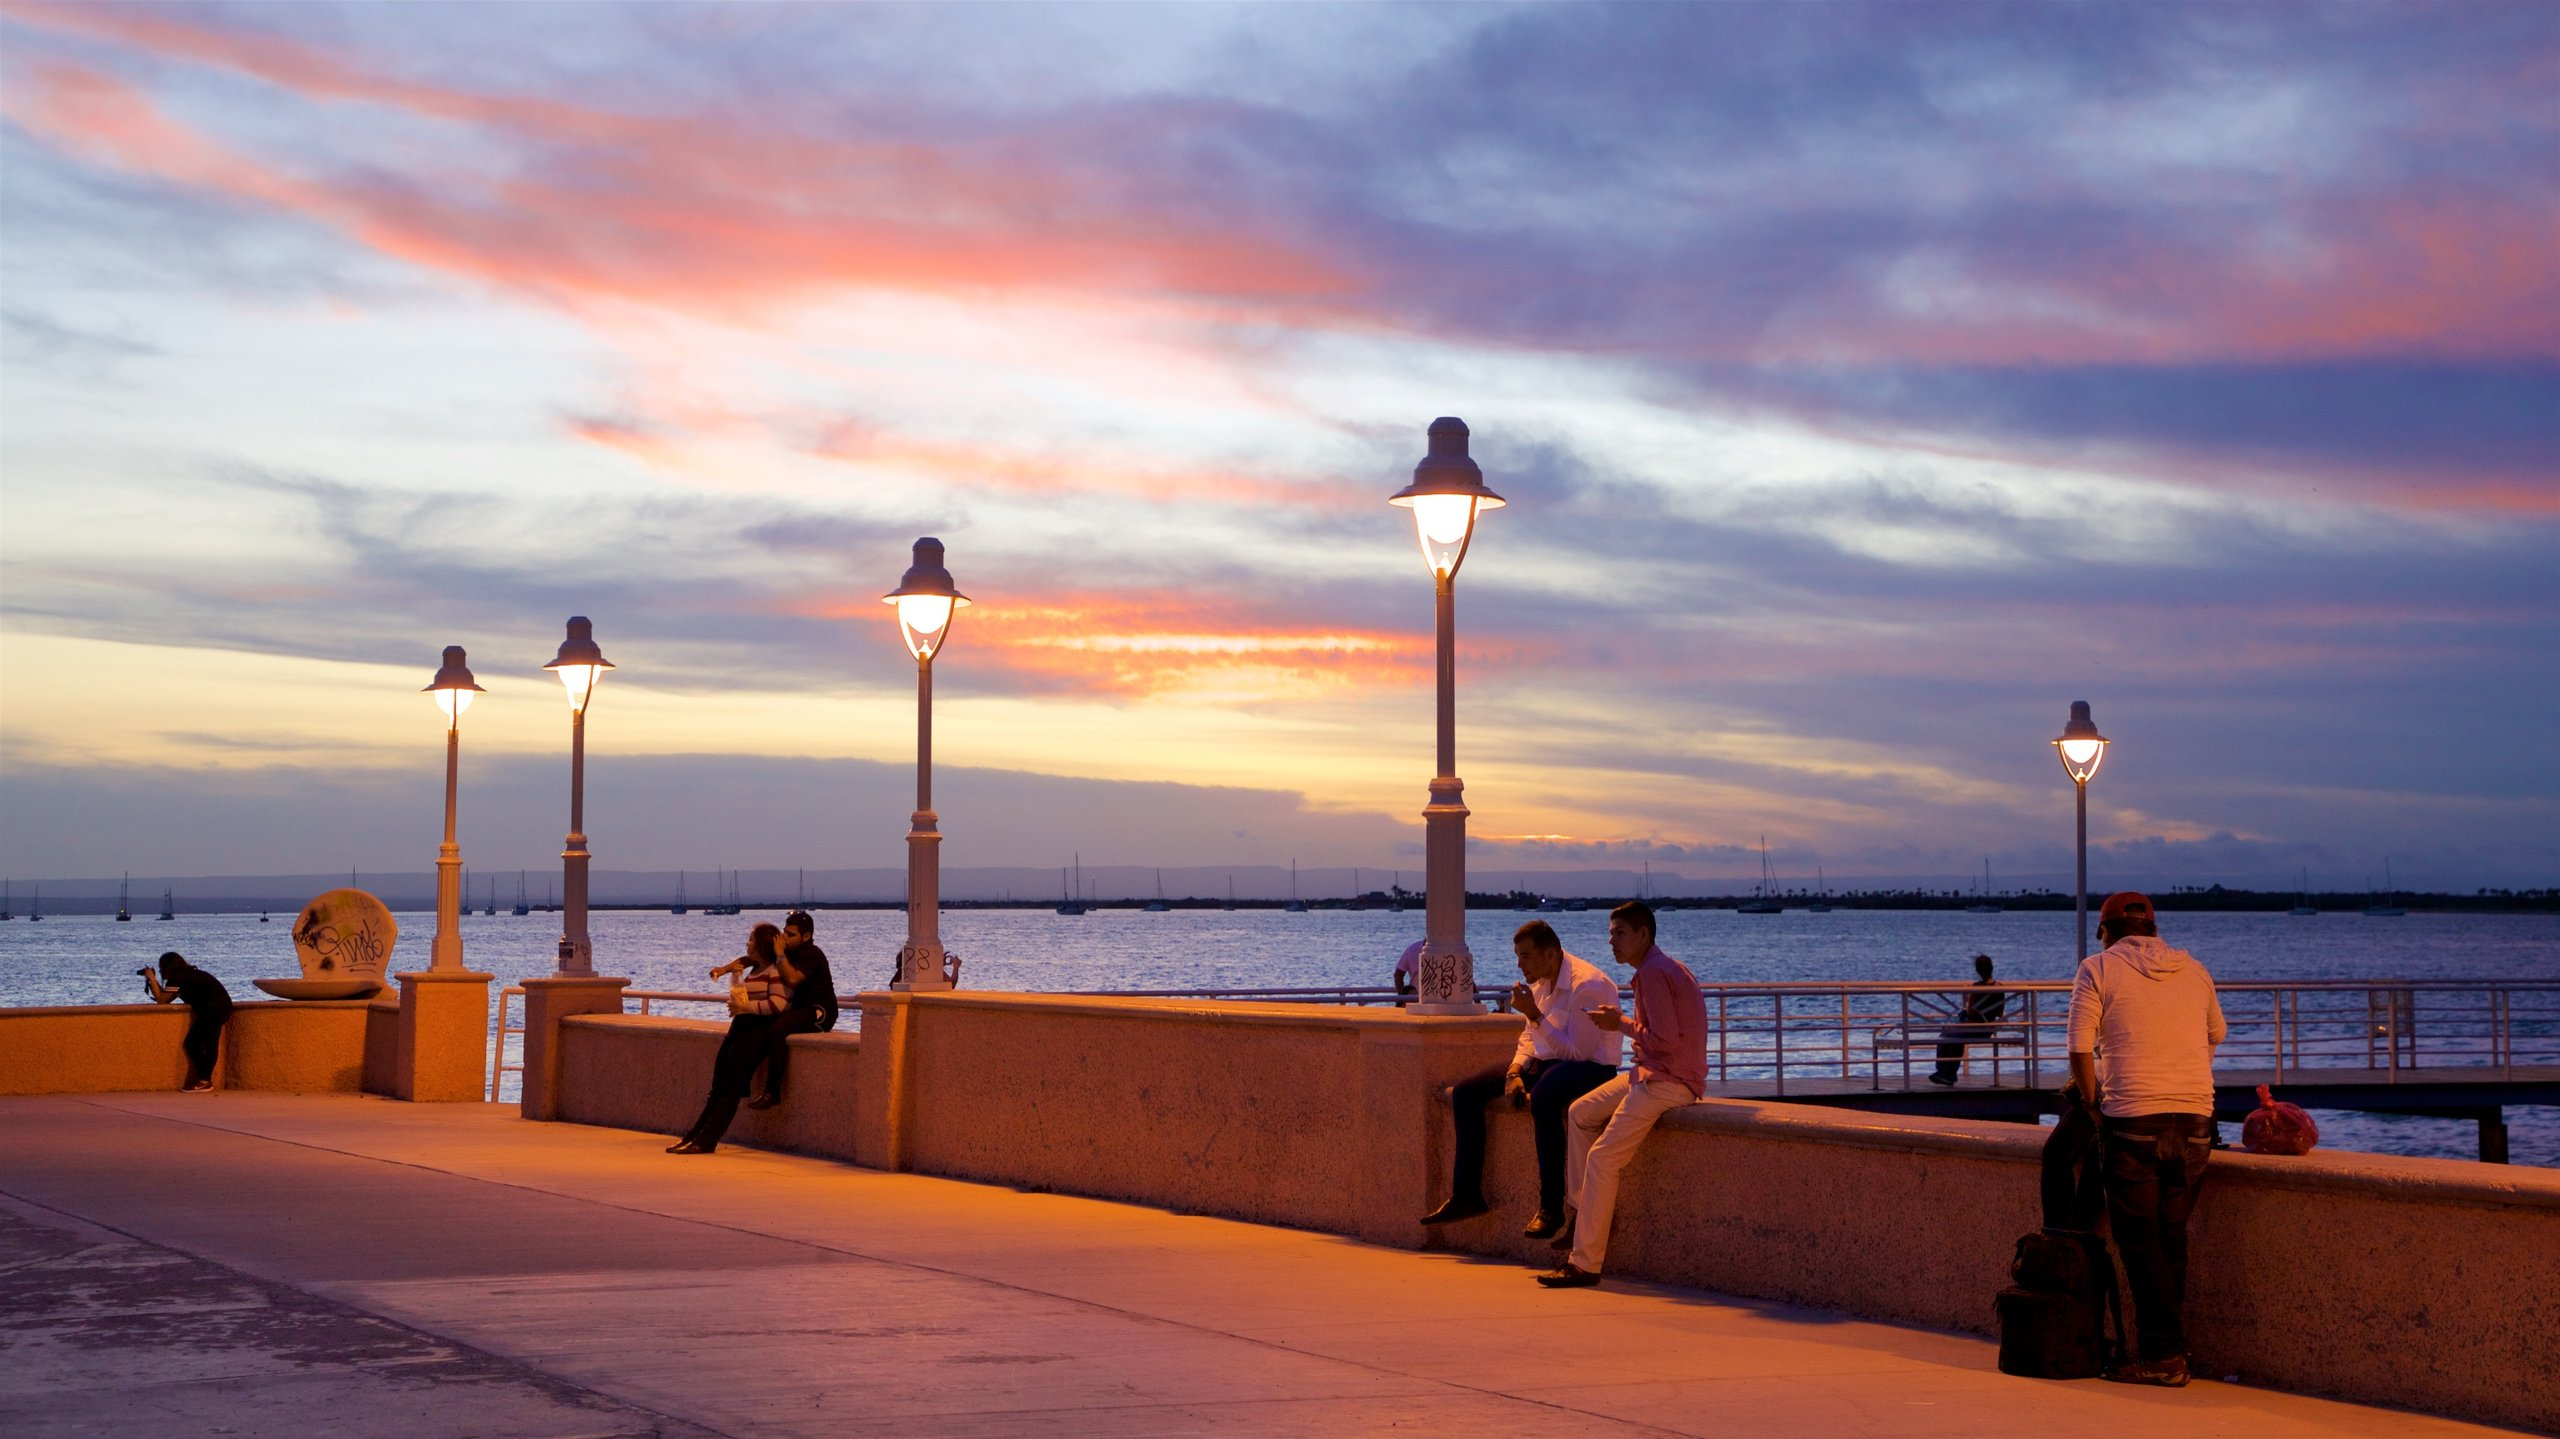 You can find out about the history of La Paz with a stop at Malecon La Paz. Wander the beautiful beaches and seaside in the area.